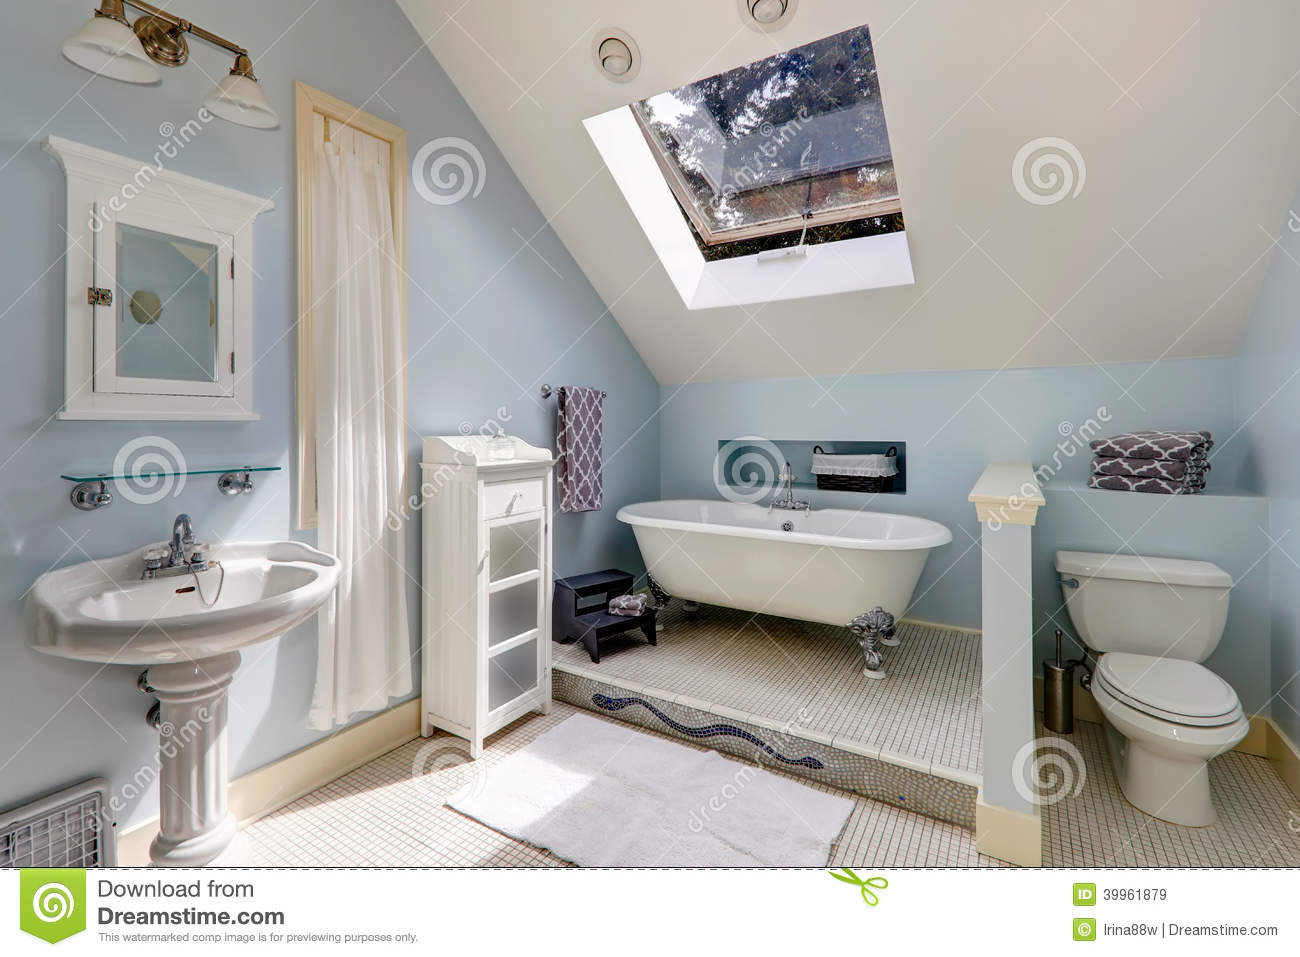 Picture of: Velux Bathroom With Antique Bath Tub Stock Image Image Of Glass Vaulted 39961879